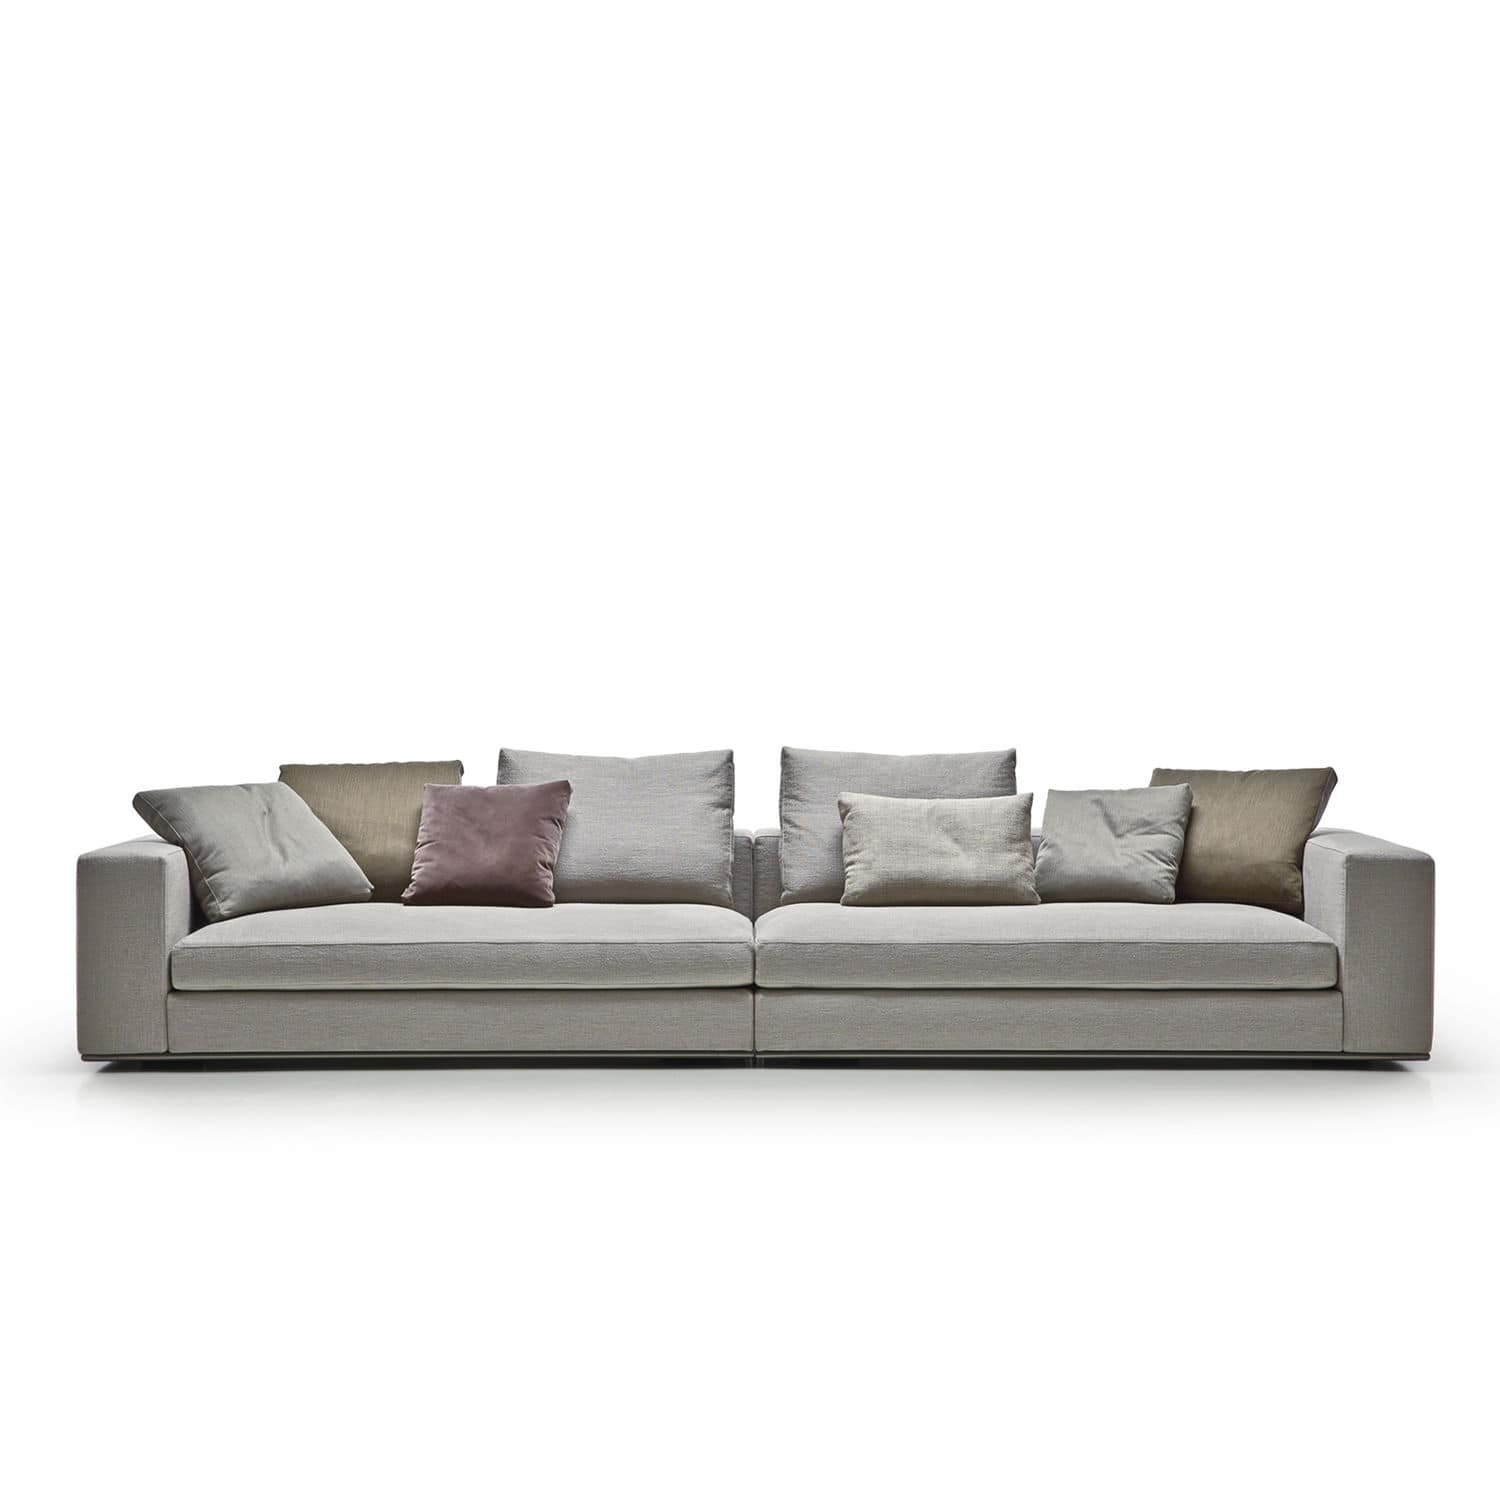 Square Sofa Modular Sofa Contemporary Fabric Leather Square Line Art